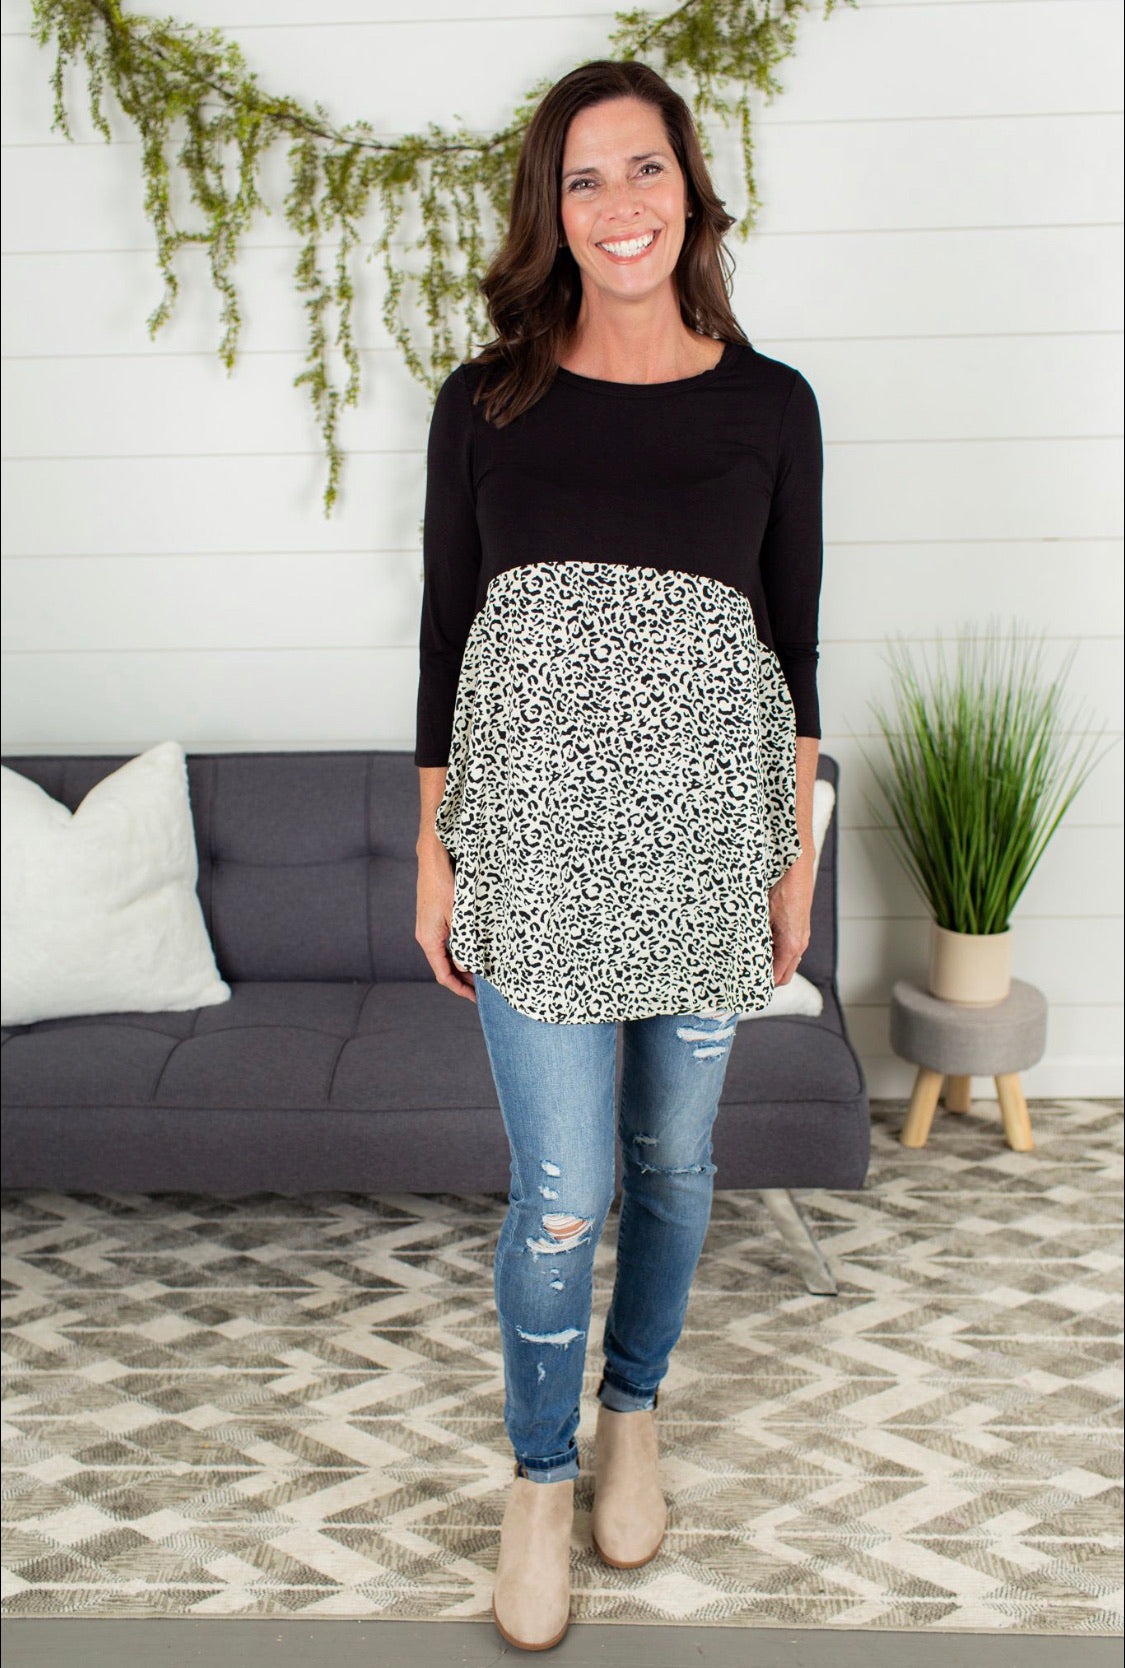 Leopard Baby Doll Tunic Top - Black